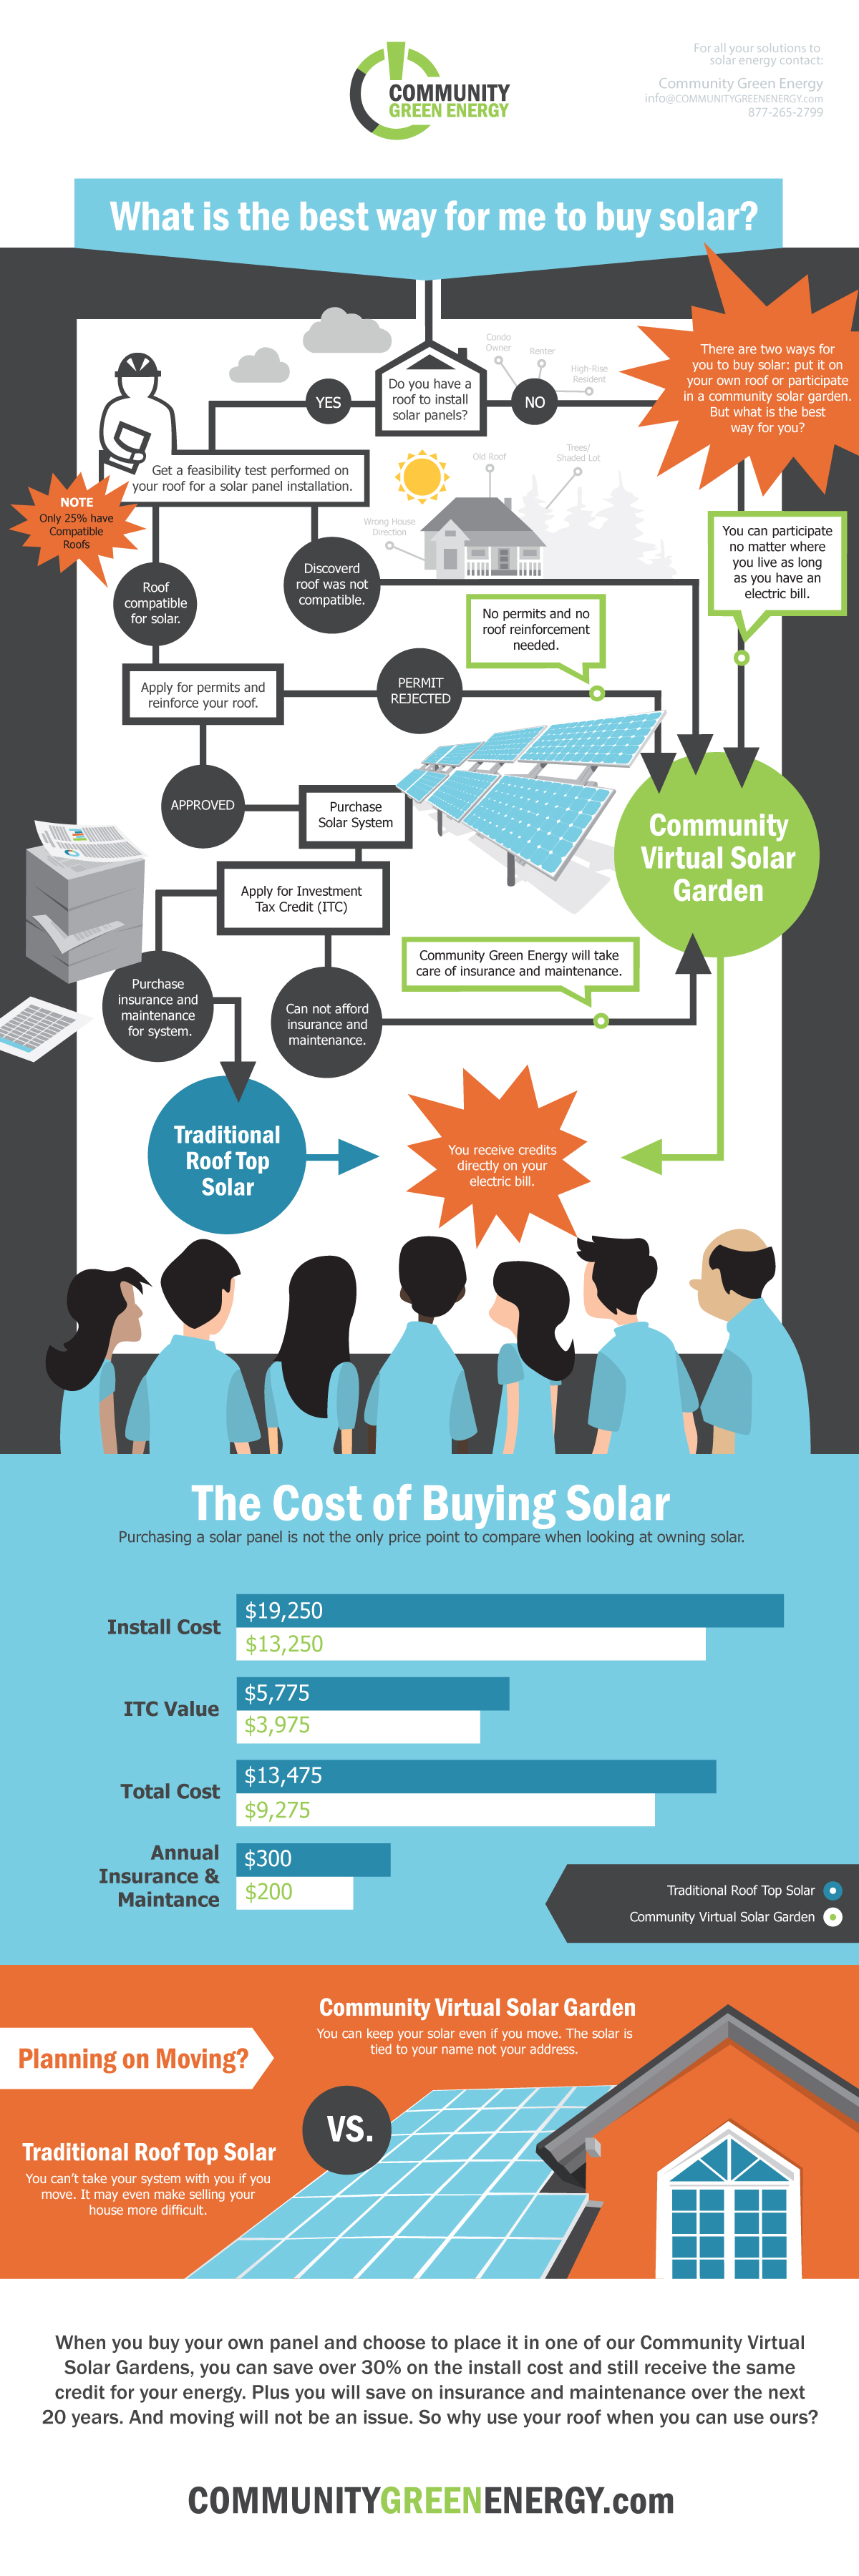 Buy Your Own Panel or Traditional Solar, Which is the best option for me?